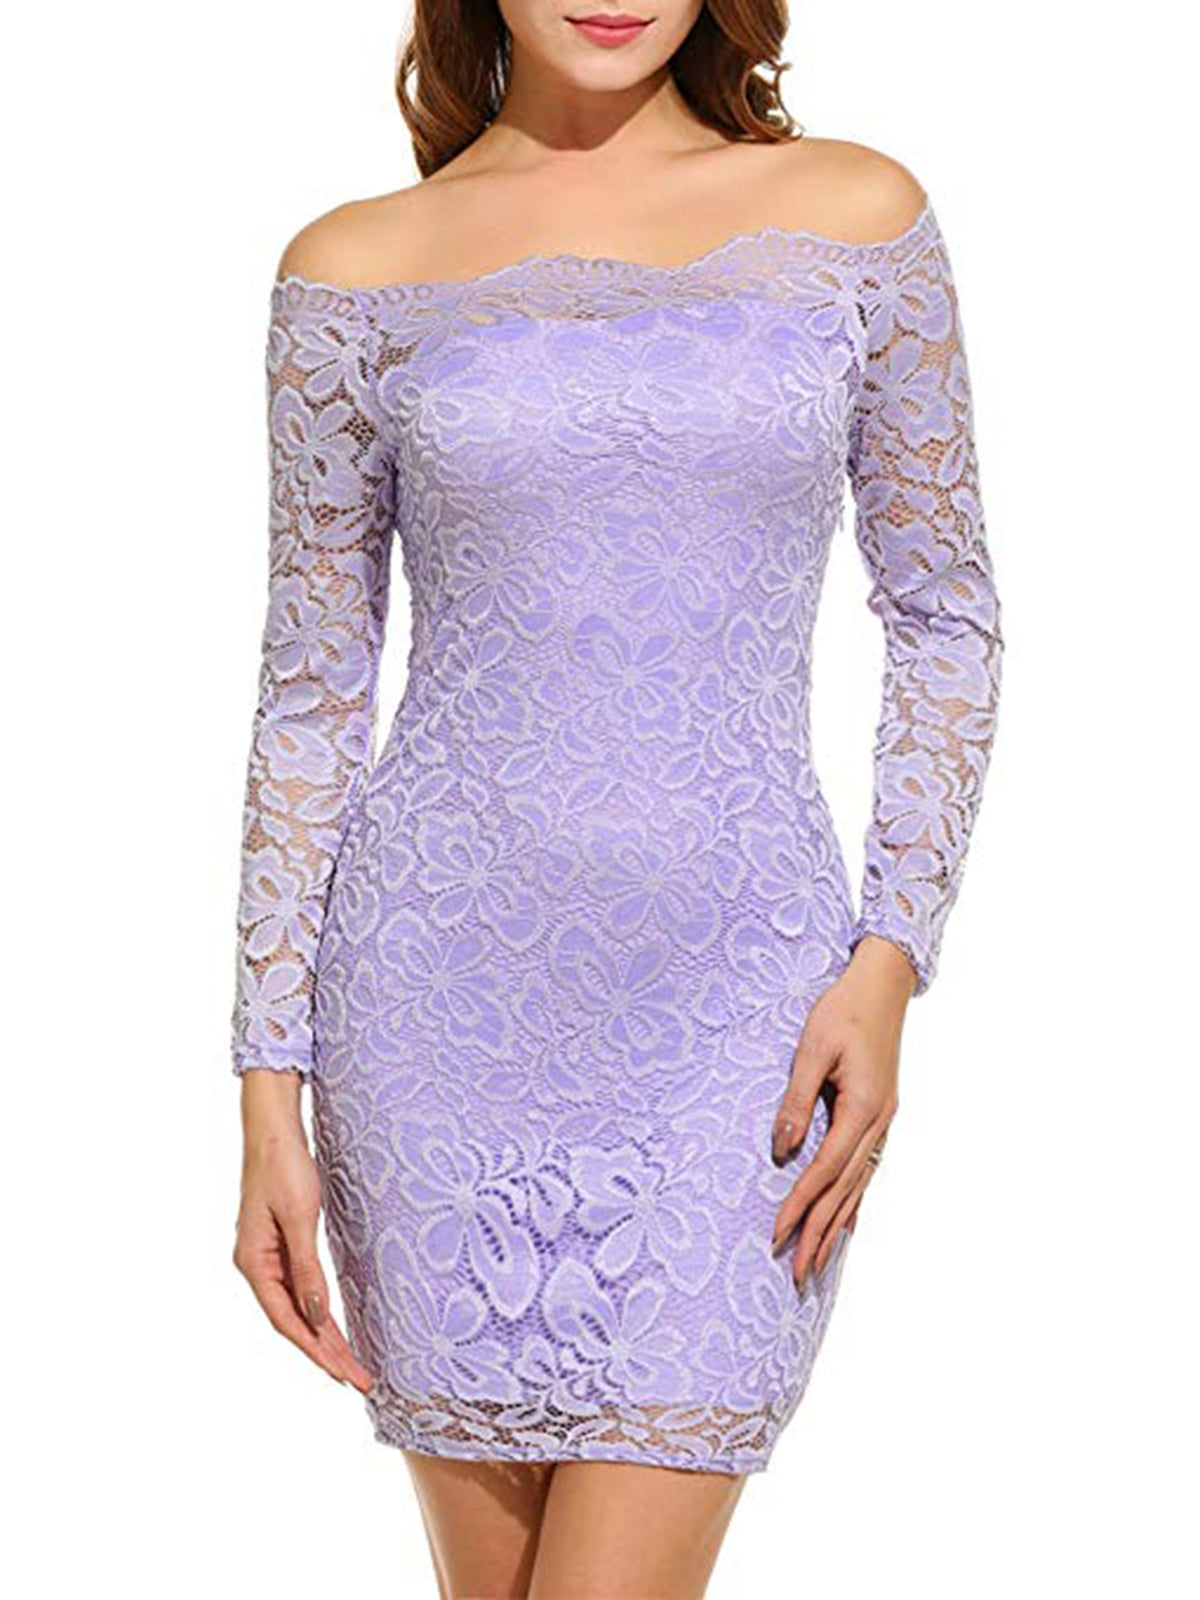 Women s Off Shoulder Lace Dress Long Sleeve Bodycon Cocktail Party Wedding  Dress 888210cbe1